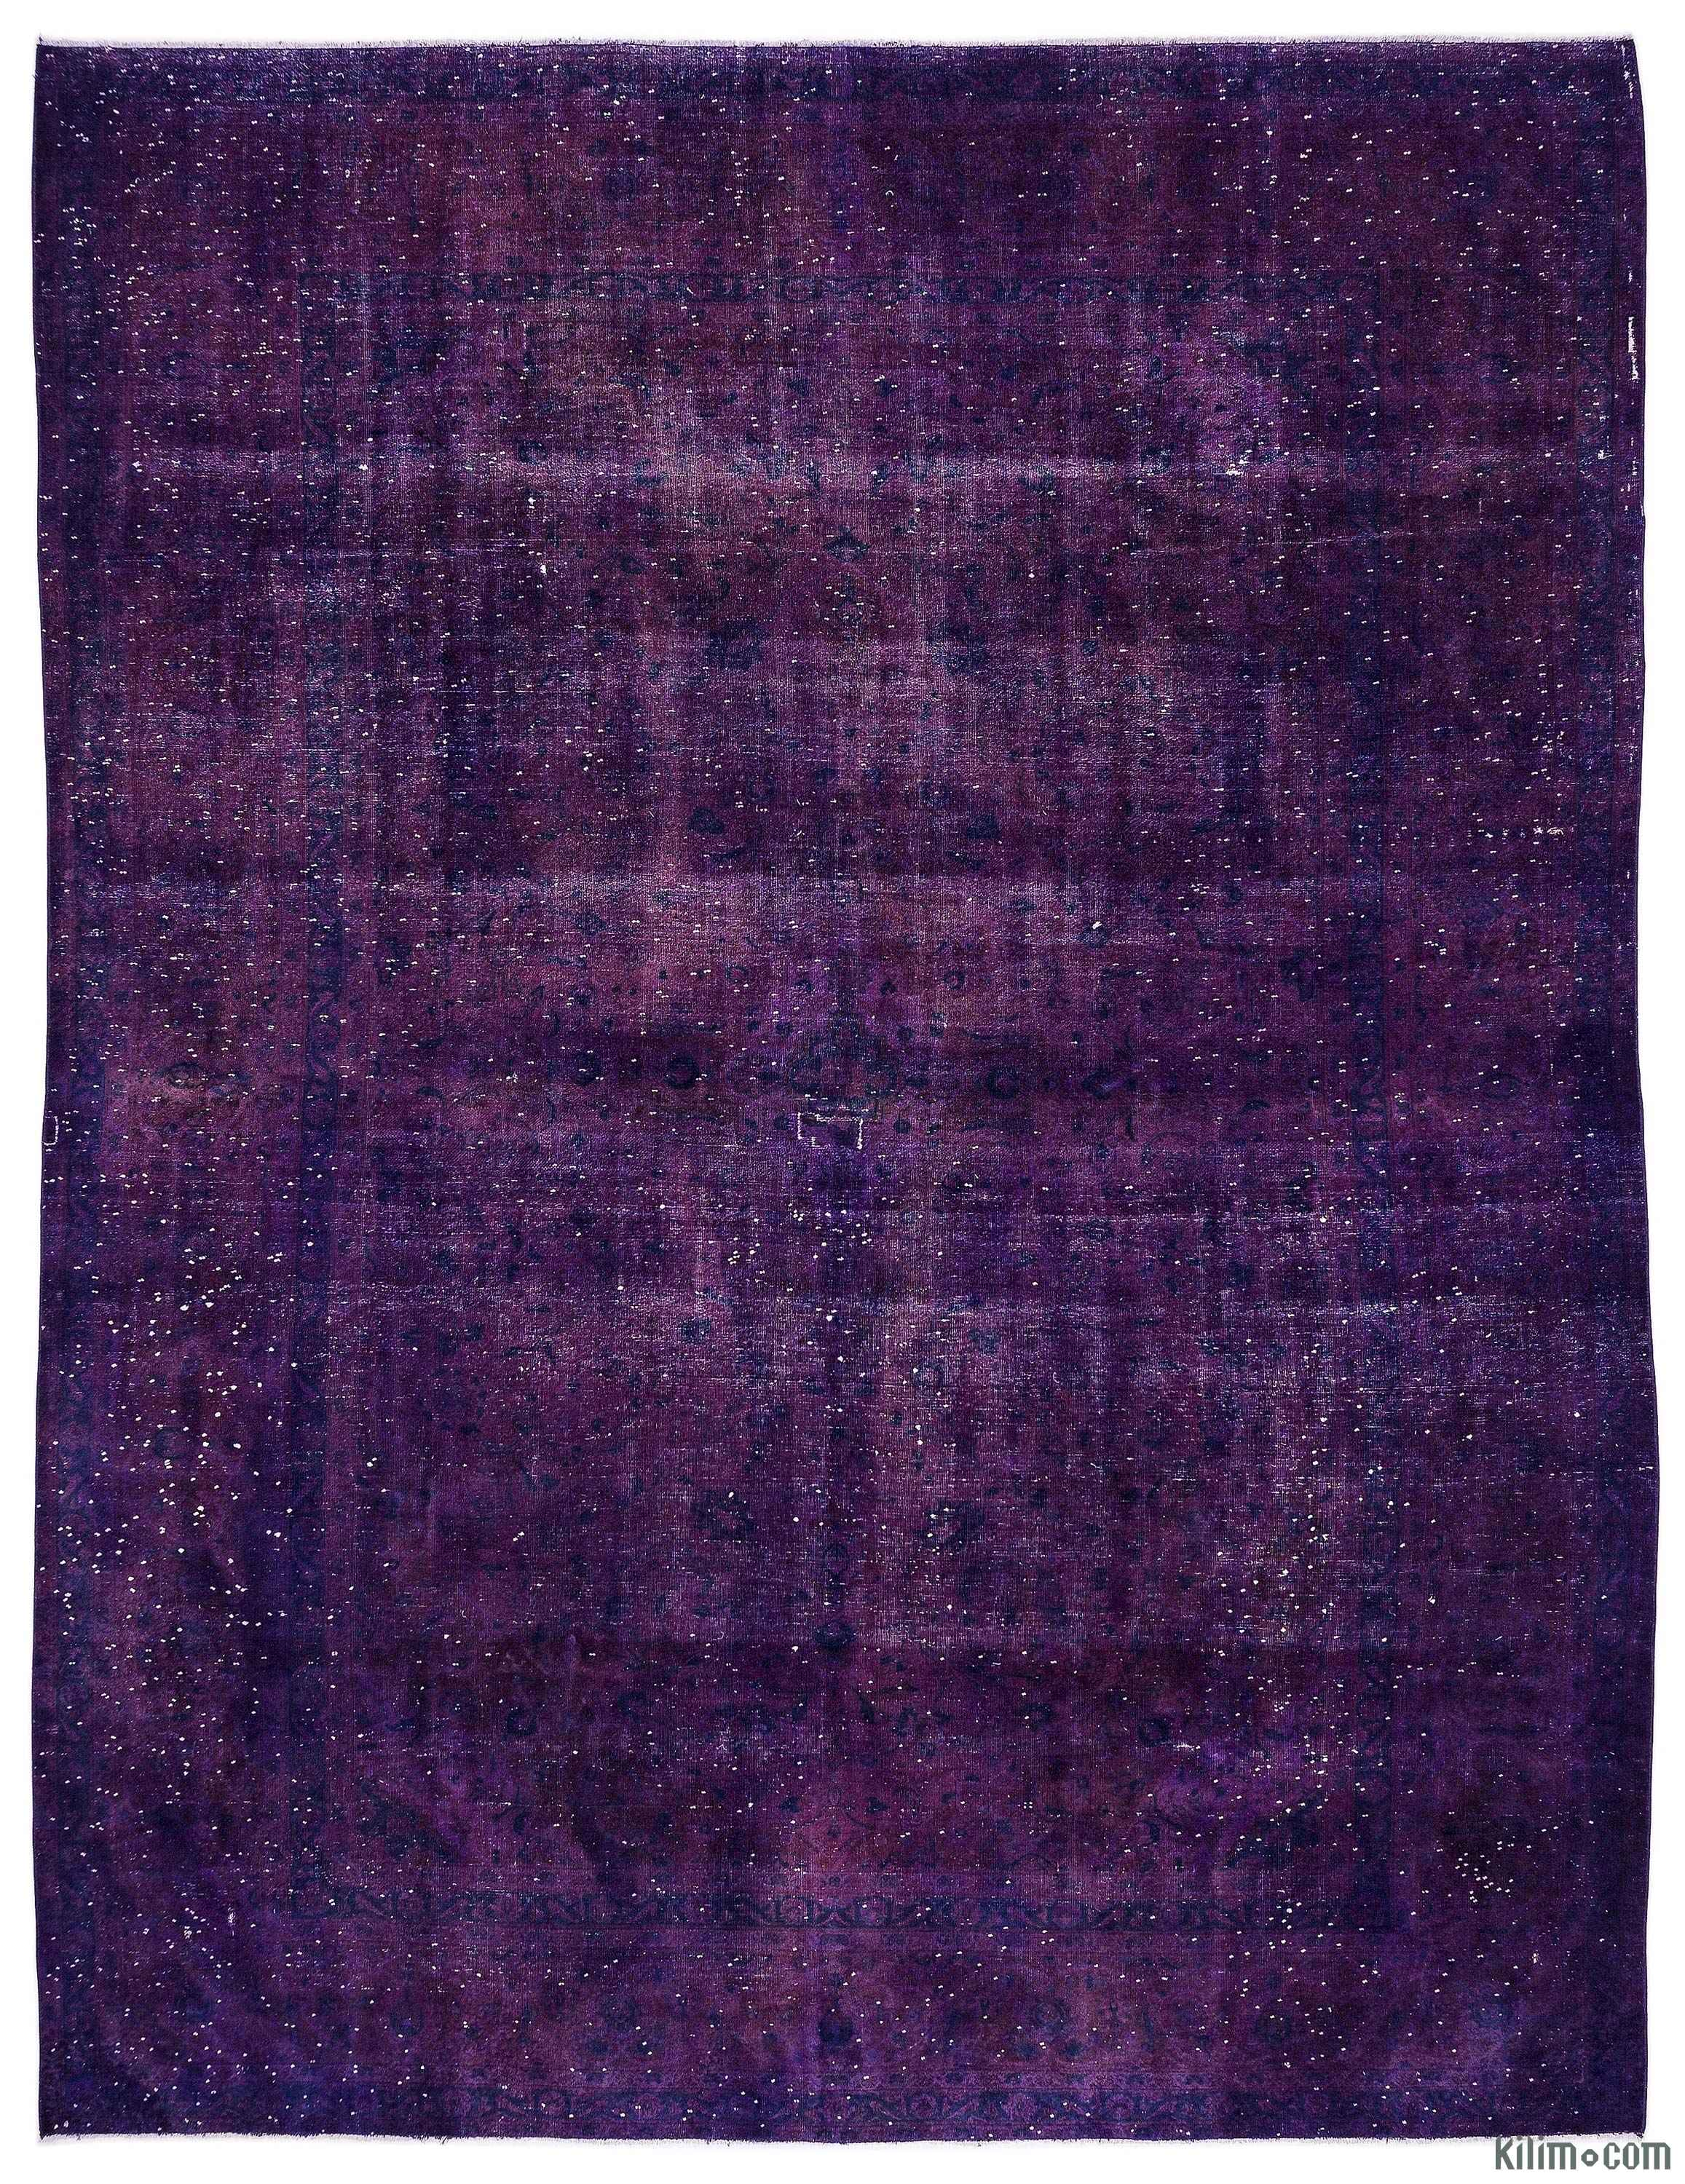 K0013222 Purple Over Dyed Vintage Hand Knotted Oriental Rug 9 6 X 12 6 114 In X 150 In The Source For Hand Knotted Vintage Rugs Hand Woven Kilim Rugs Wool Turkish Rugs Overdyed Persian Rugs